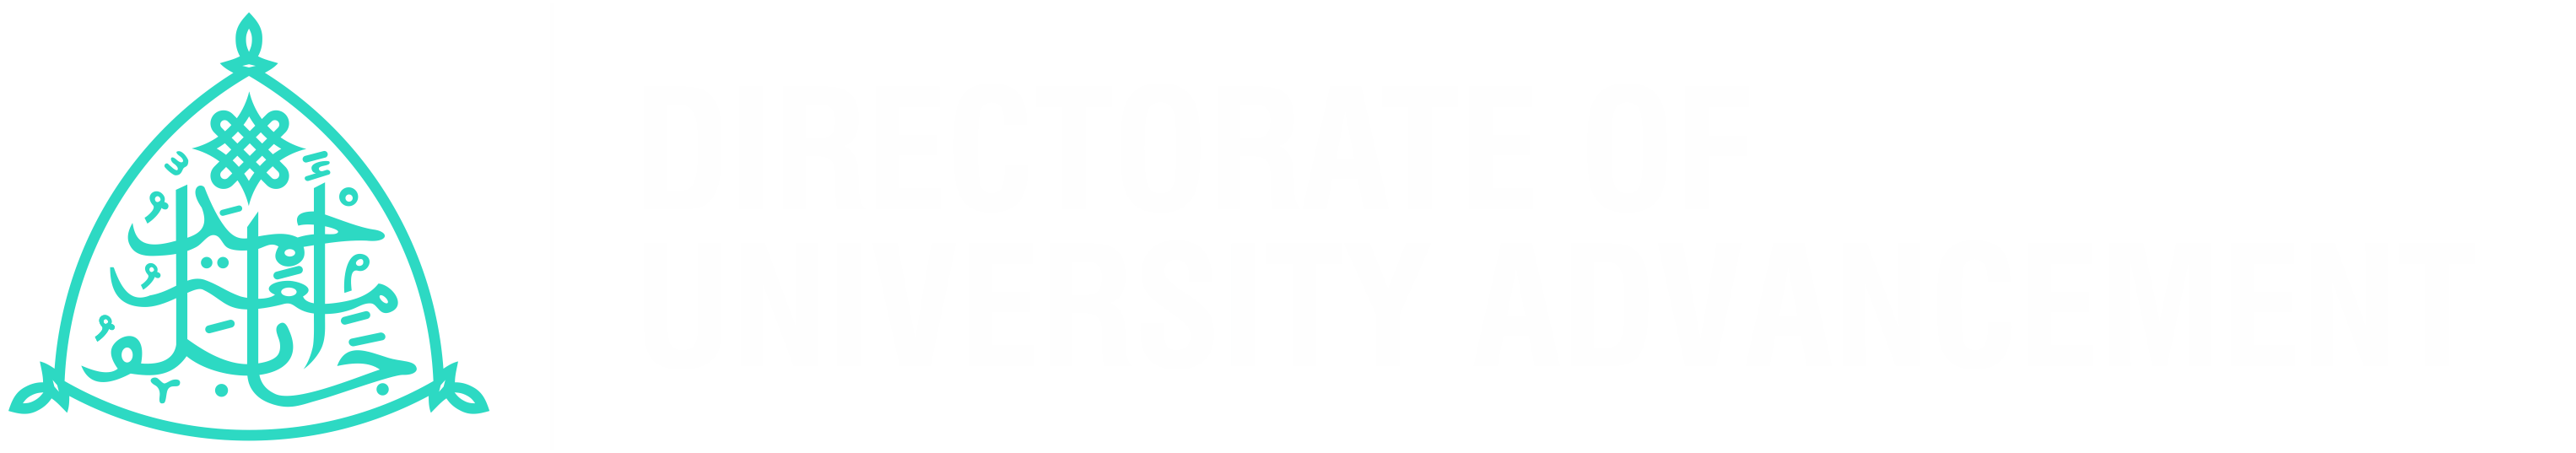 Directorate of University Advancement